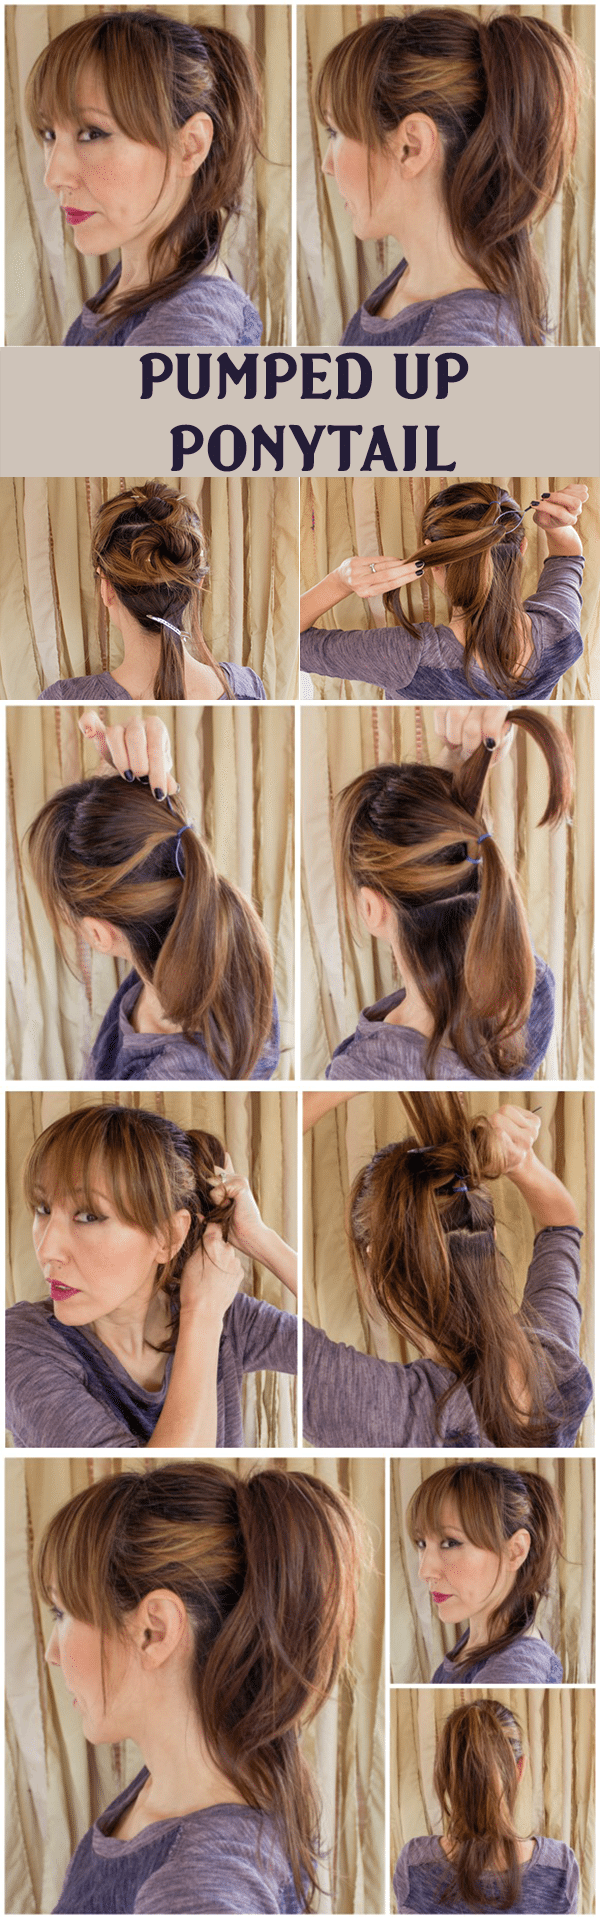 PUMPED UP PONYTAIL HAIRSTYLE